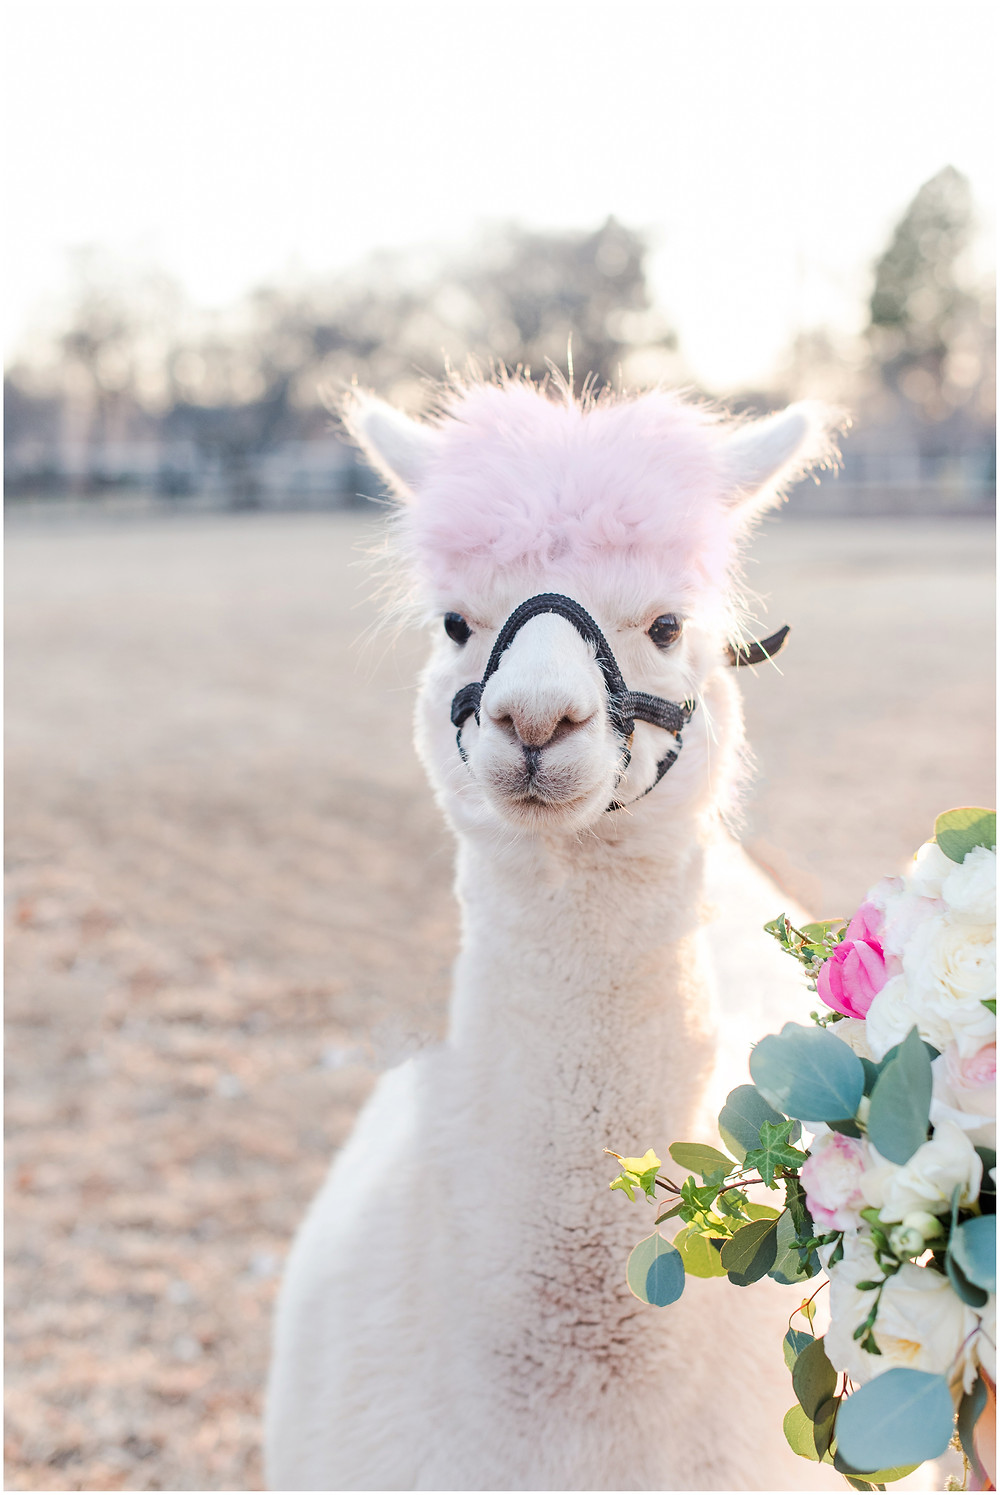 pink themed wedding. Messy bouquet. Bride in flower grown. Wedding alpaca. bride with alpaca.